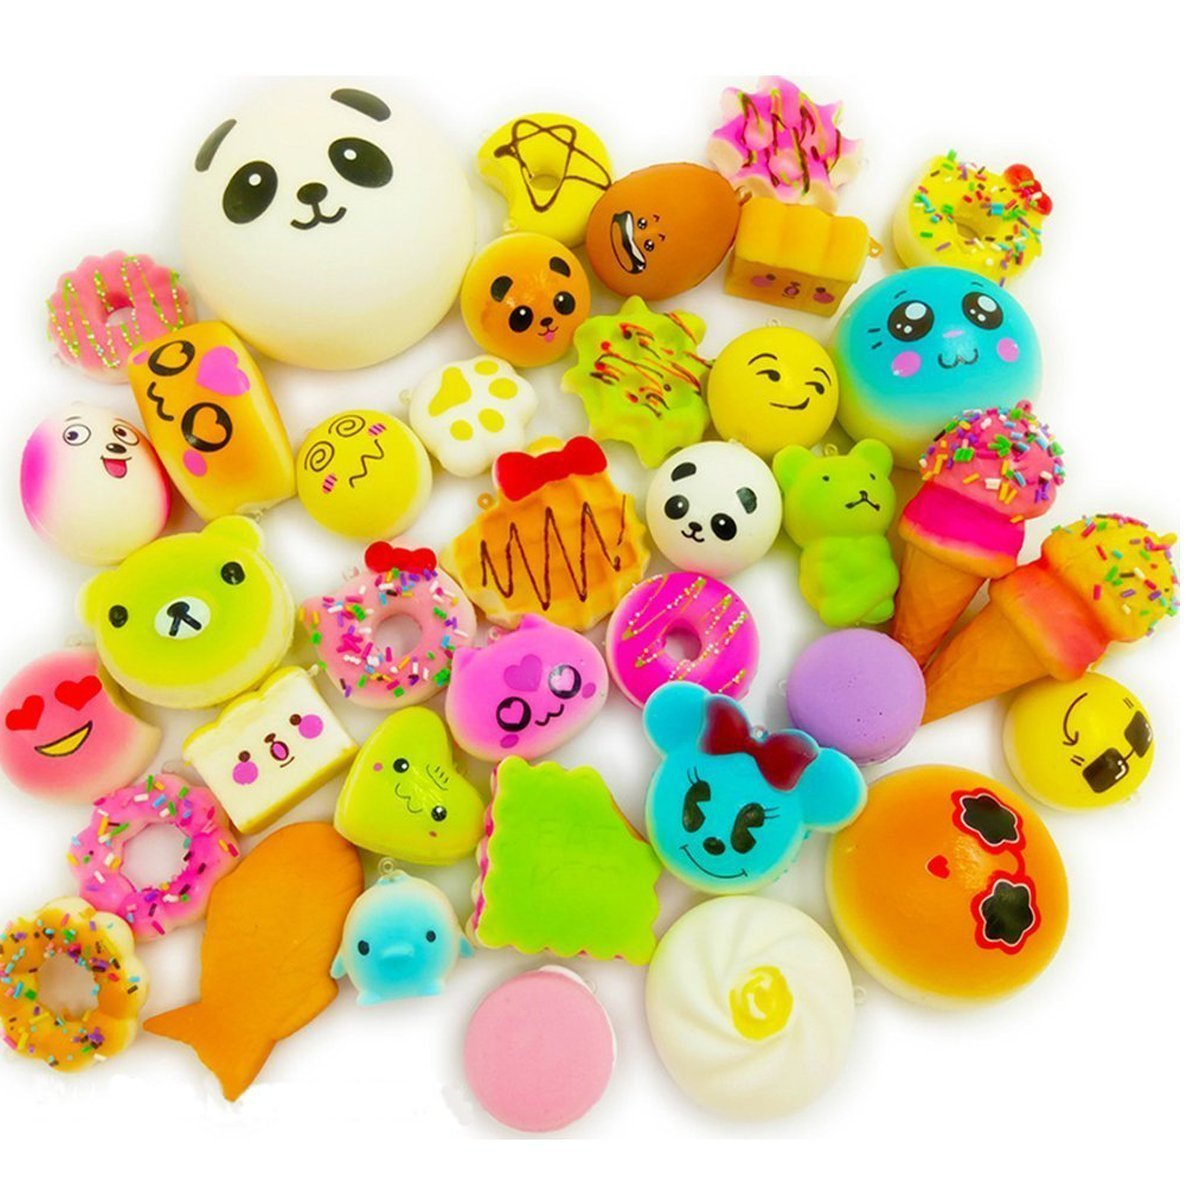 CloverTale 20 Pack Squishy Toy Jumbo Food Squishise Cat Hamburgers Cream Scented Slow Rising Squishies Charms, Kid Toy, Lovely Toy Stress Relief Toy Cell Phone Straps Key Chains Stress Relief toy Fstop Labs PU-0020